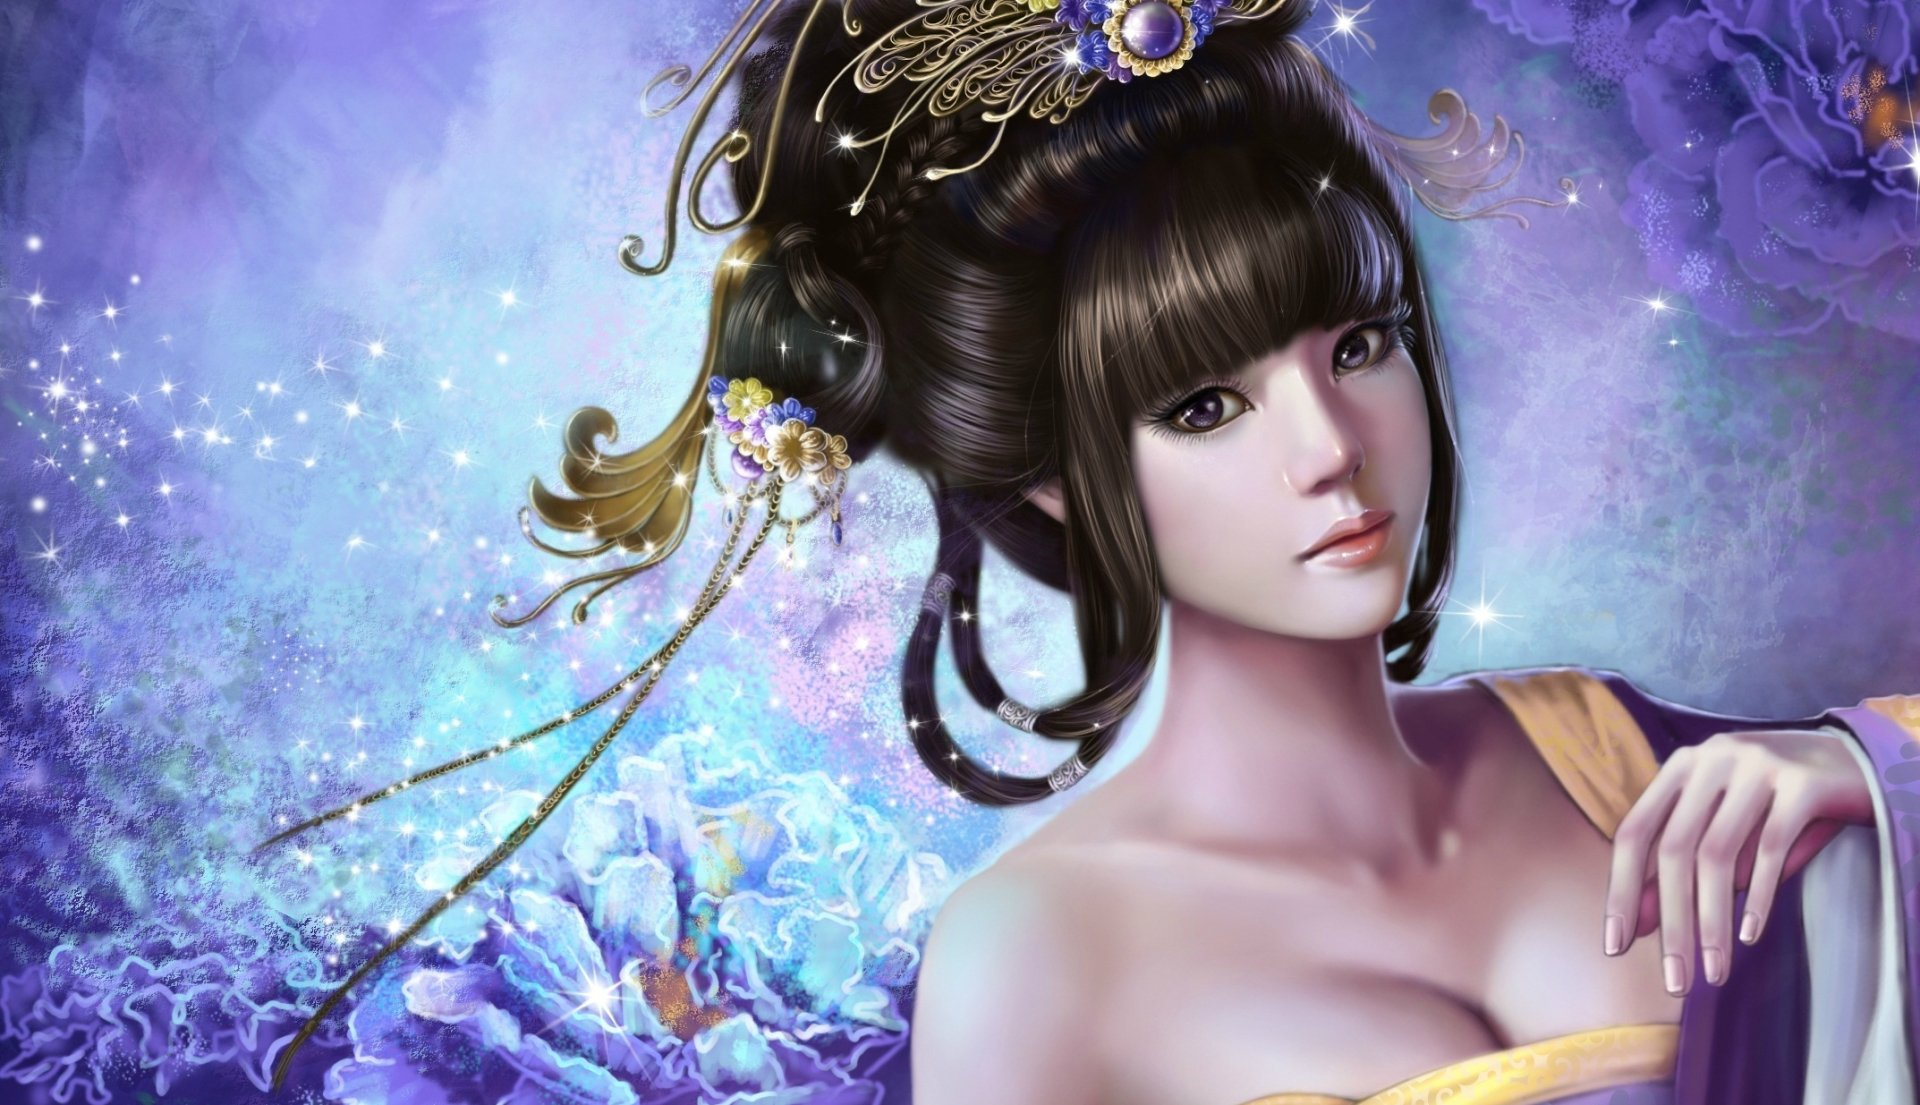 Wallpapers ID:159122